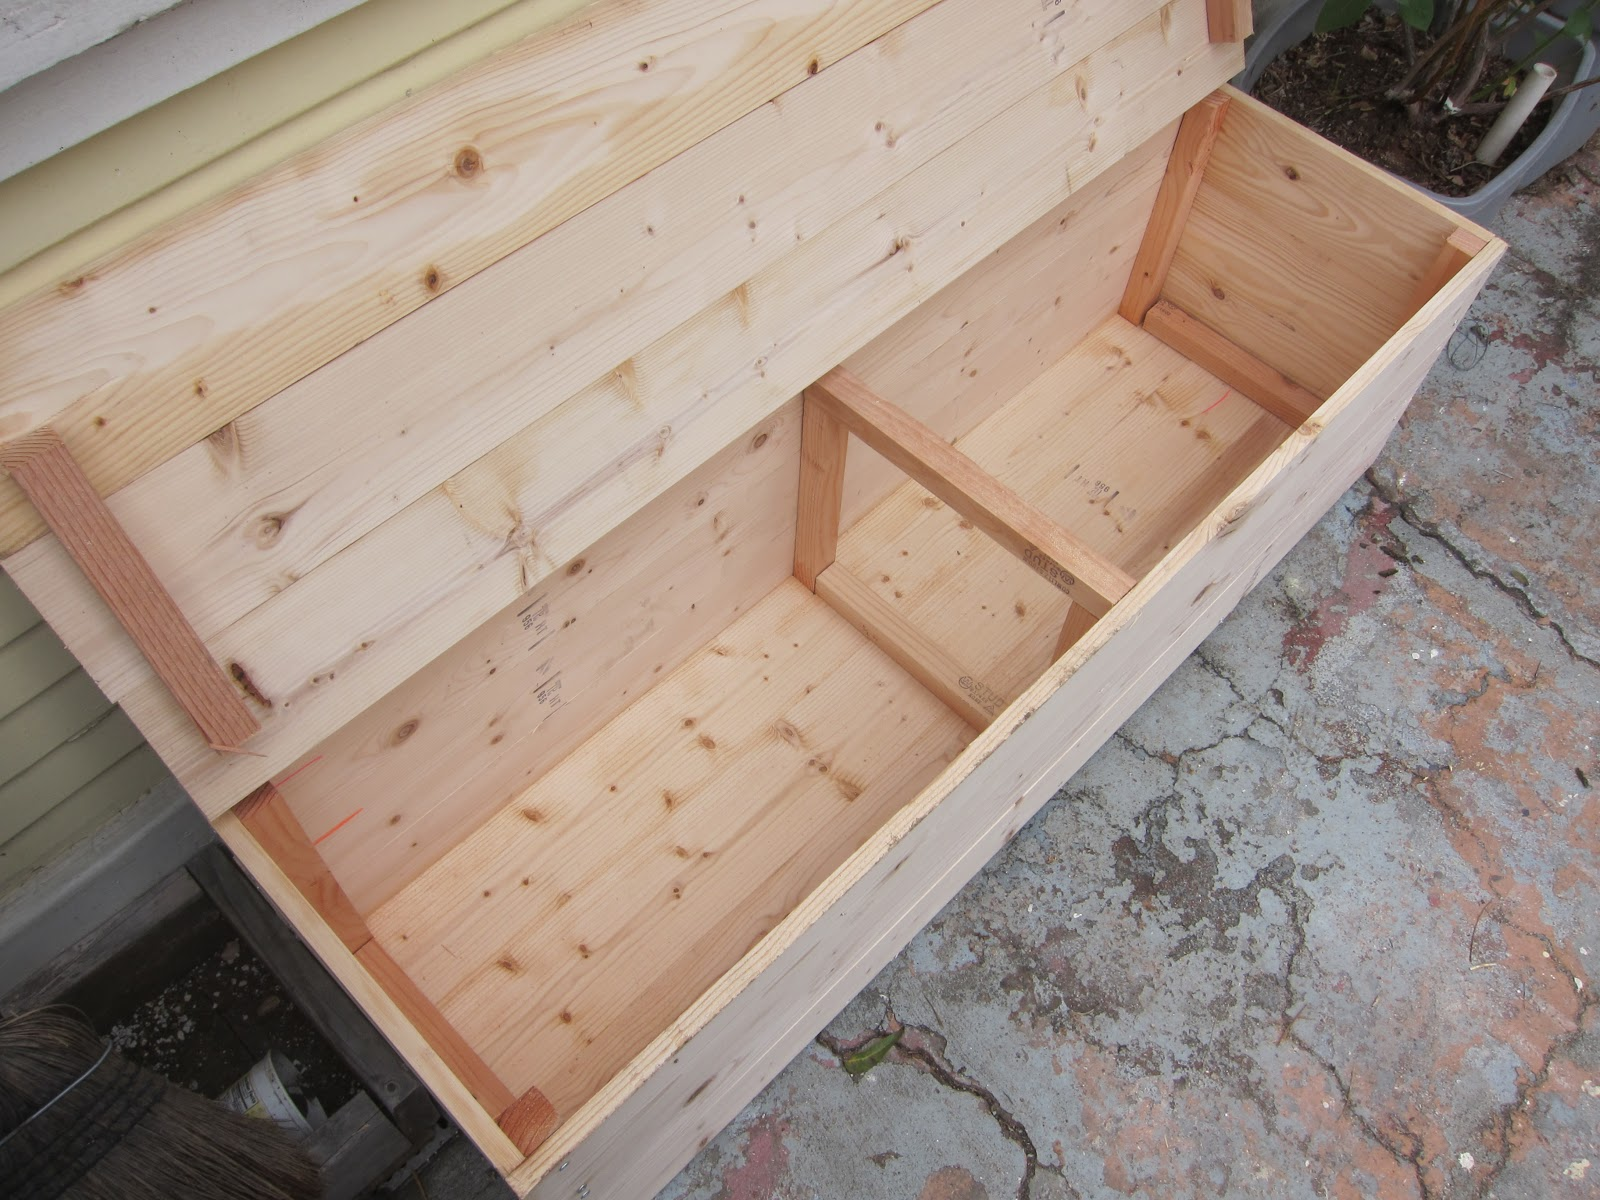 Best woodworking plans and guide wood worm bin plans for Woodworking guide